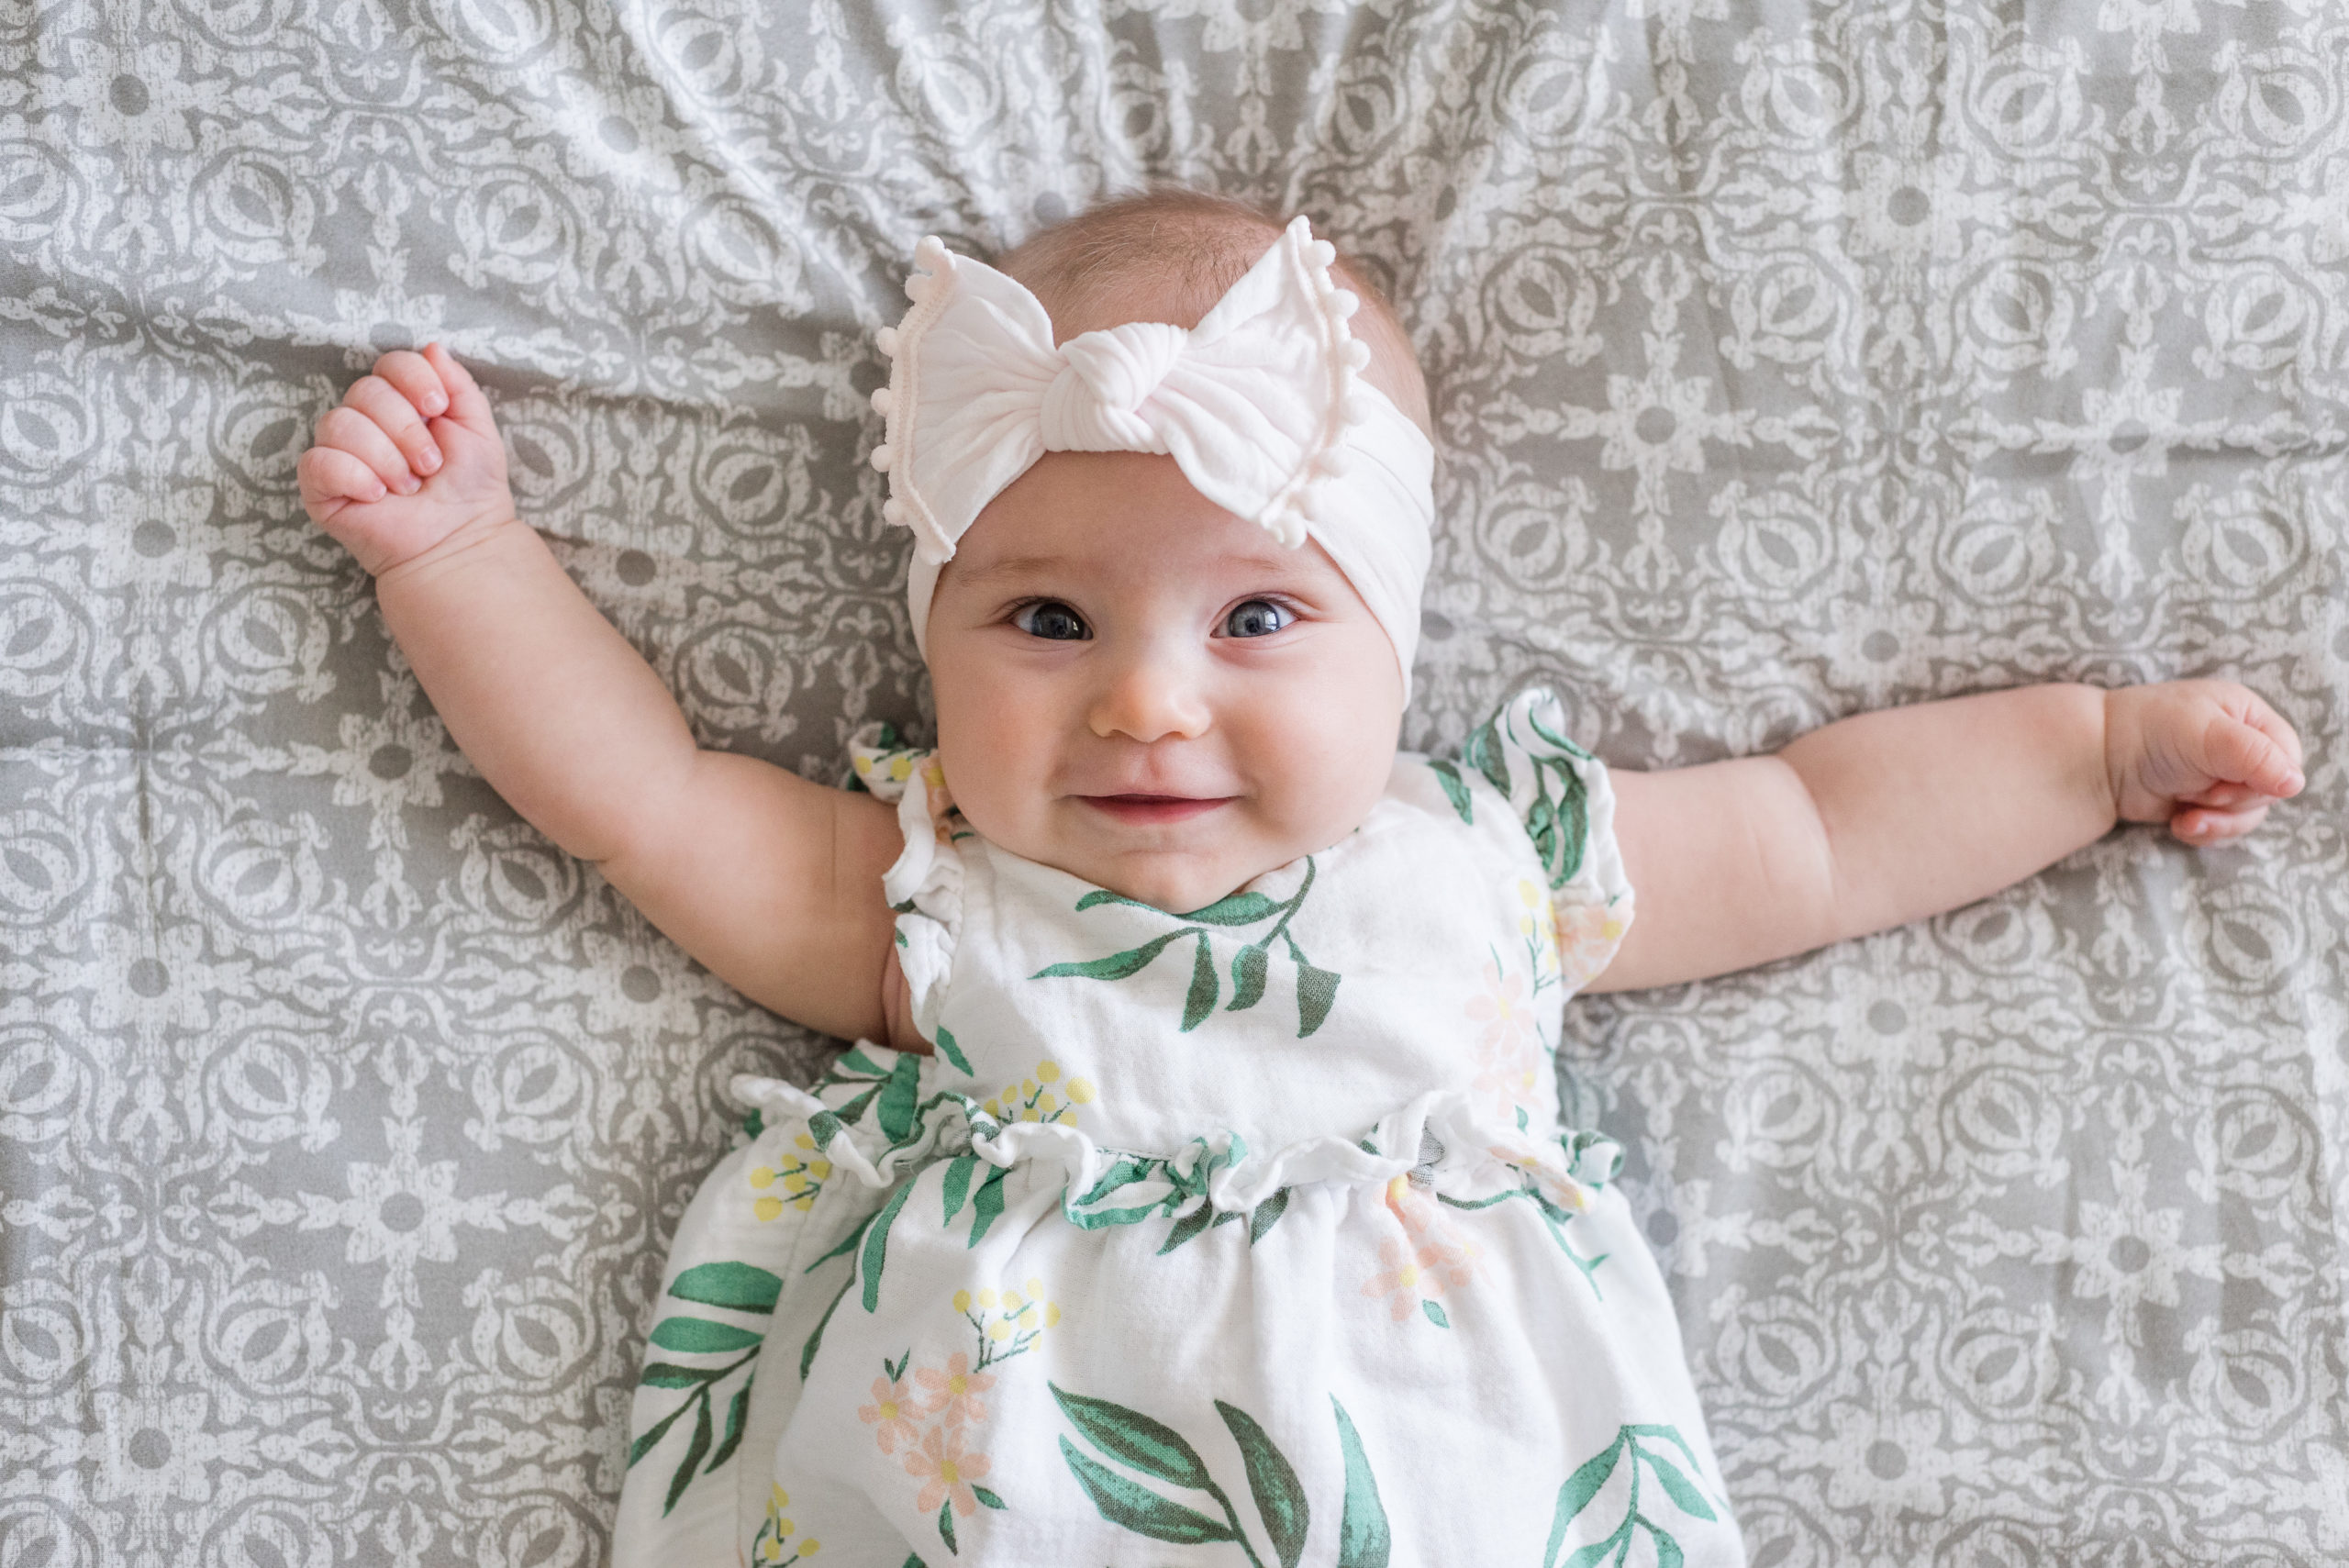 Olivia 4 Months Old - Sweet Williams Photography is a lifestyle, engagement, and wedding photographer serving the Nashville, Tennessee area and destination locations.